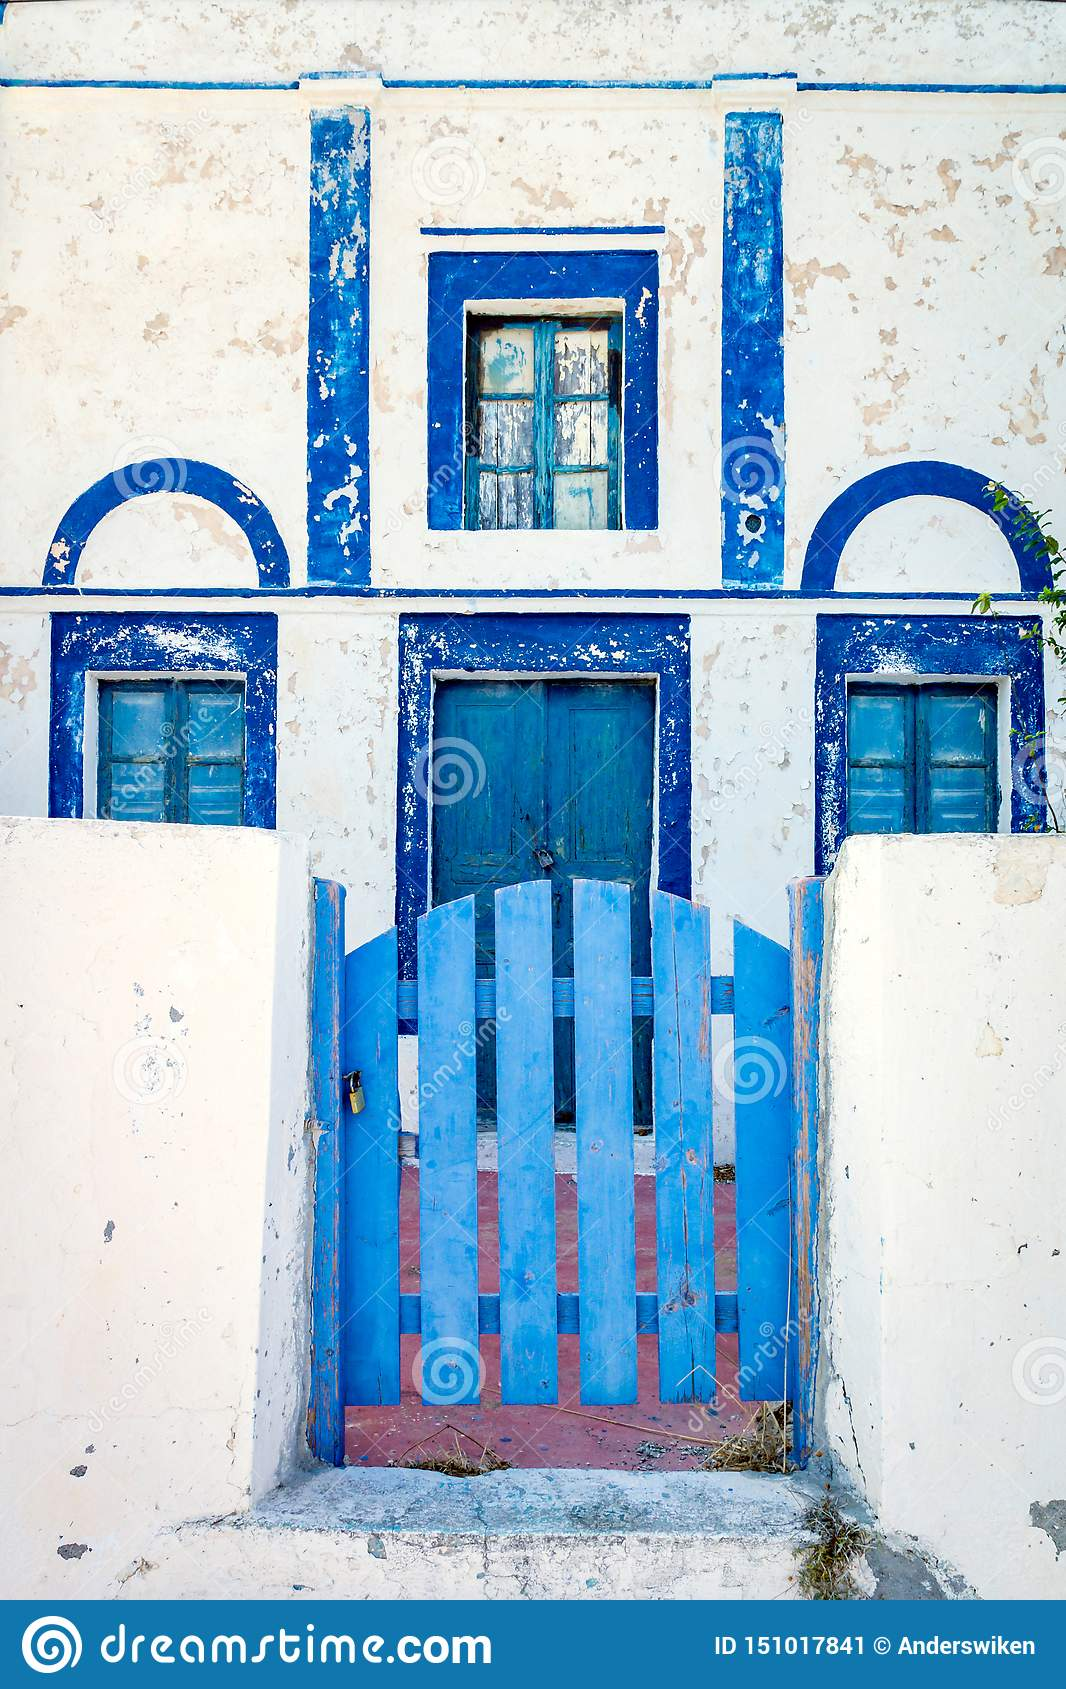 House in Santorini/Greece with blue doors and windows.